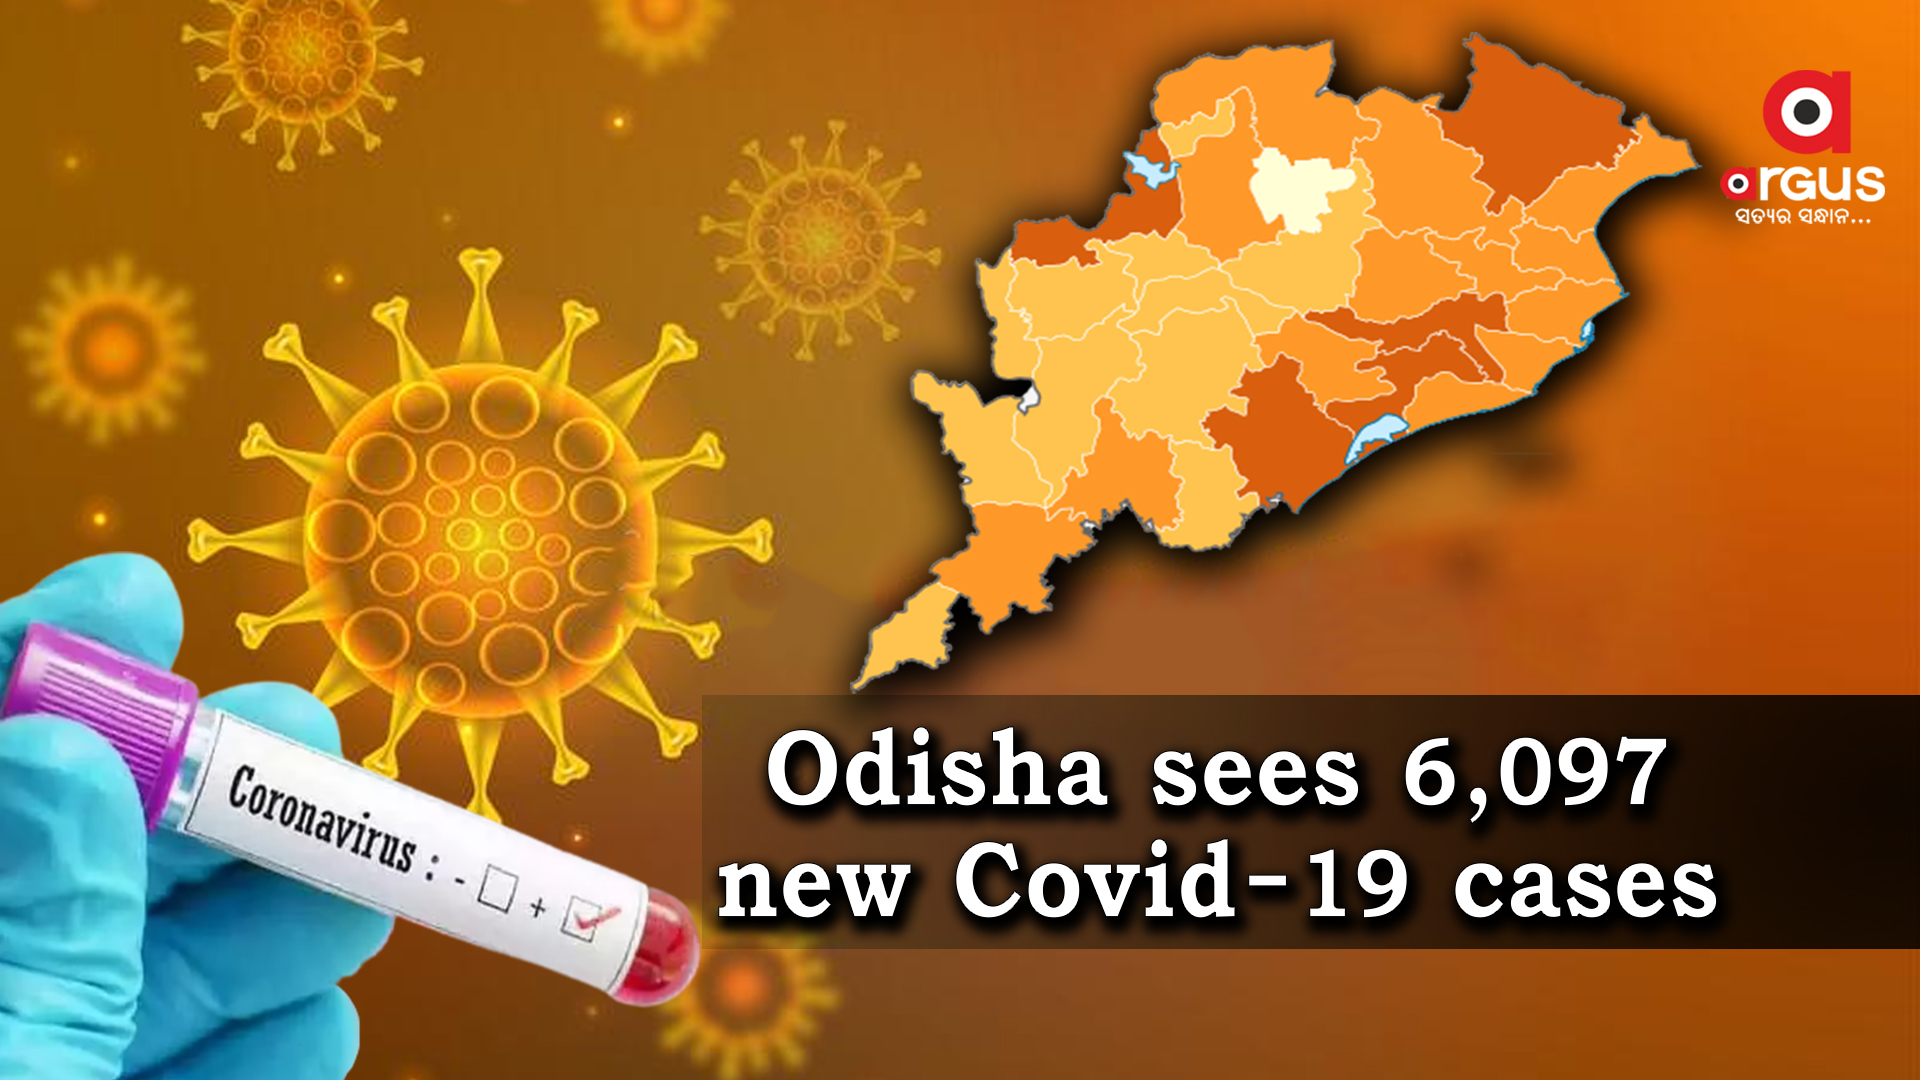 Odisha reports 6,097 new Covid-19 cases in last 24 hours